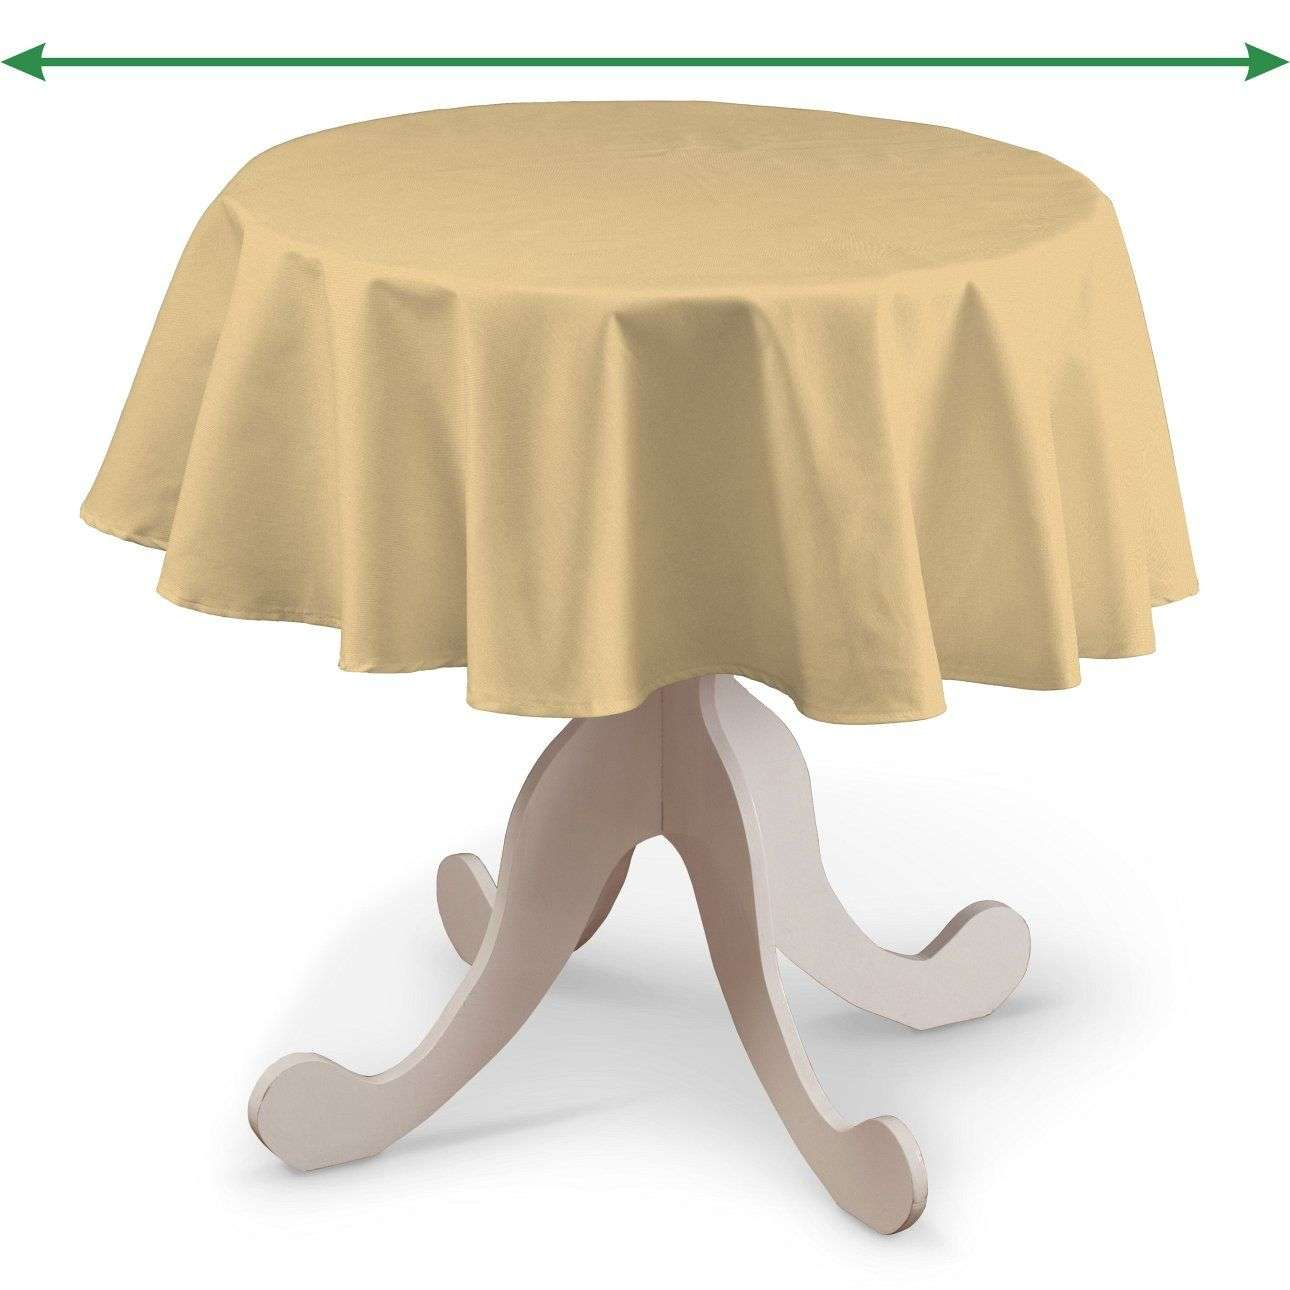 Round tablecloth in collection Damasco, fabric: 141-75